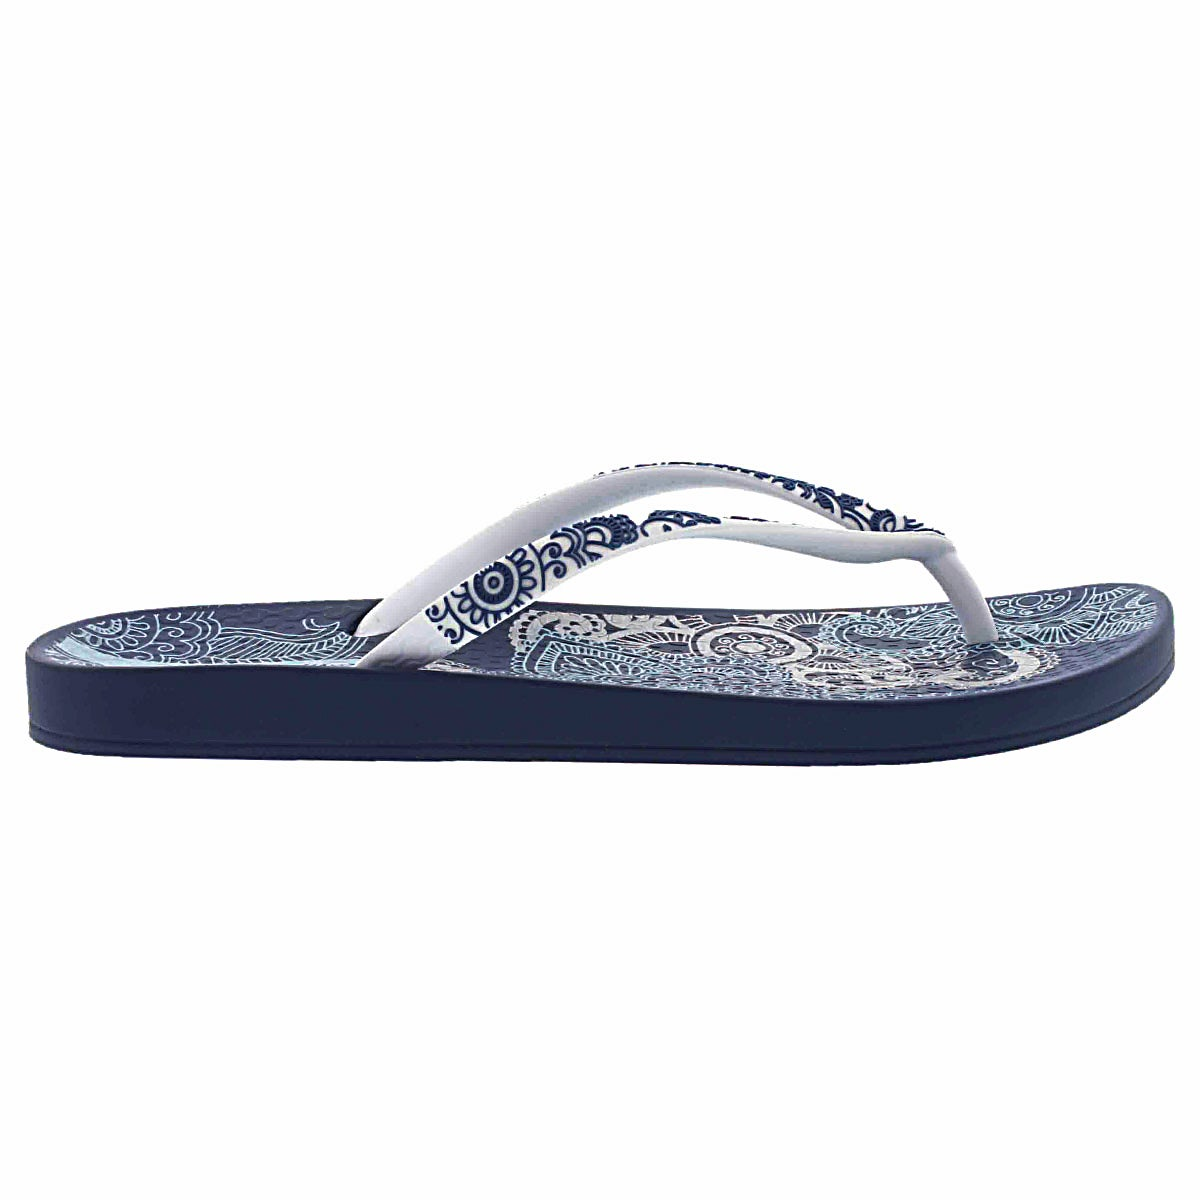 Lds Lace blue/white printed flip flop